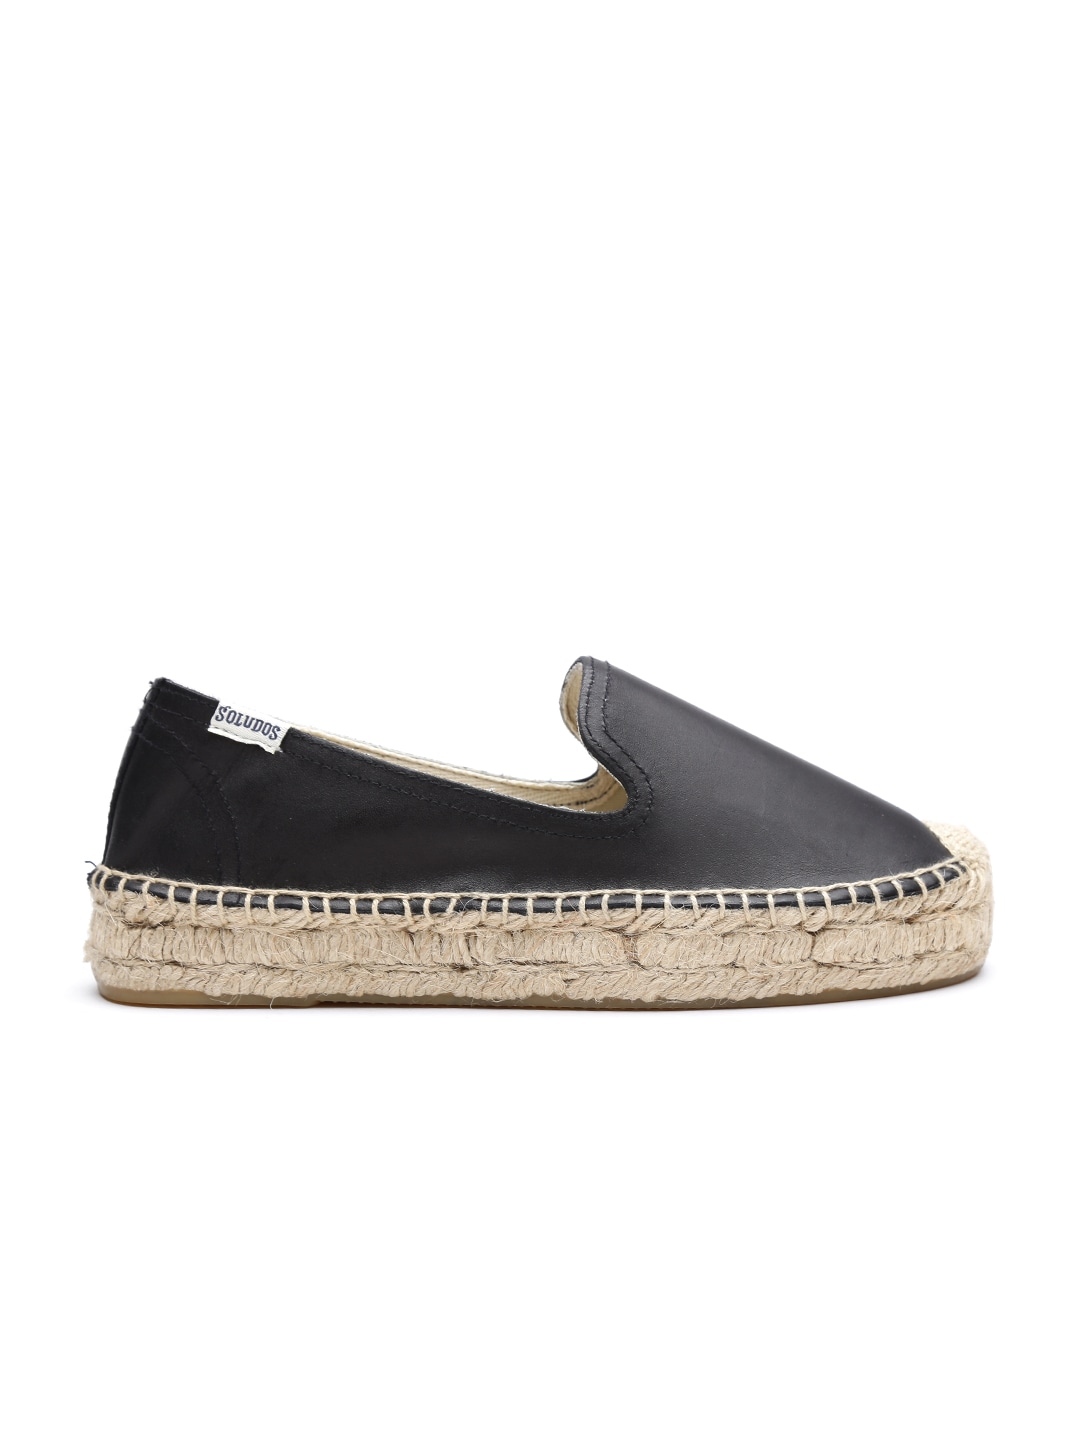 Soludos Women Black Solid Leather Espadrilles